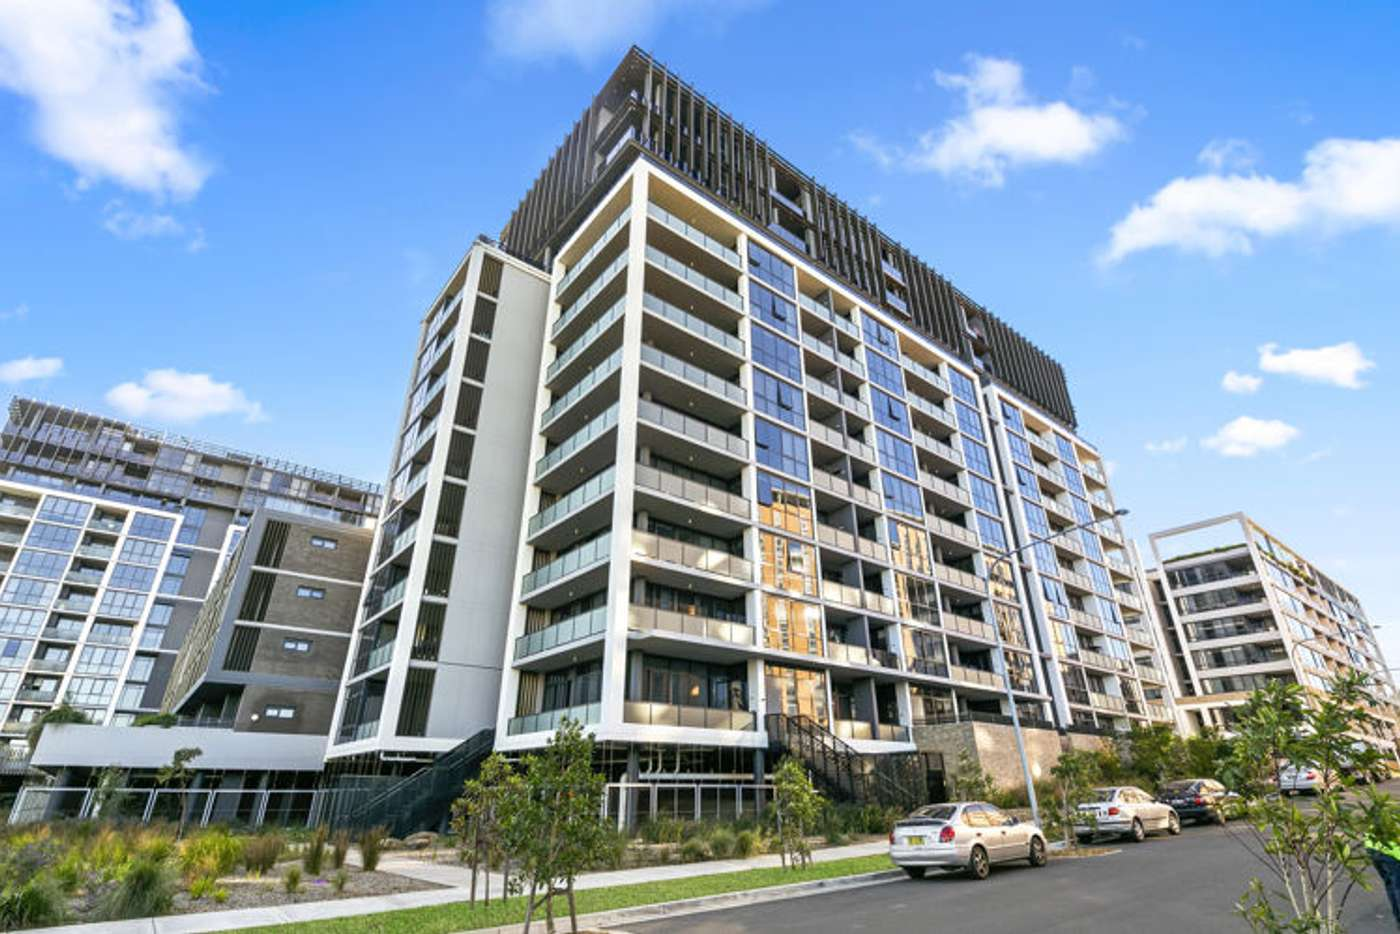 Main view of Homely unit listing, 1001/2h Morton Street, Parramatta NSW 2150